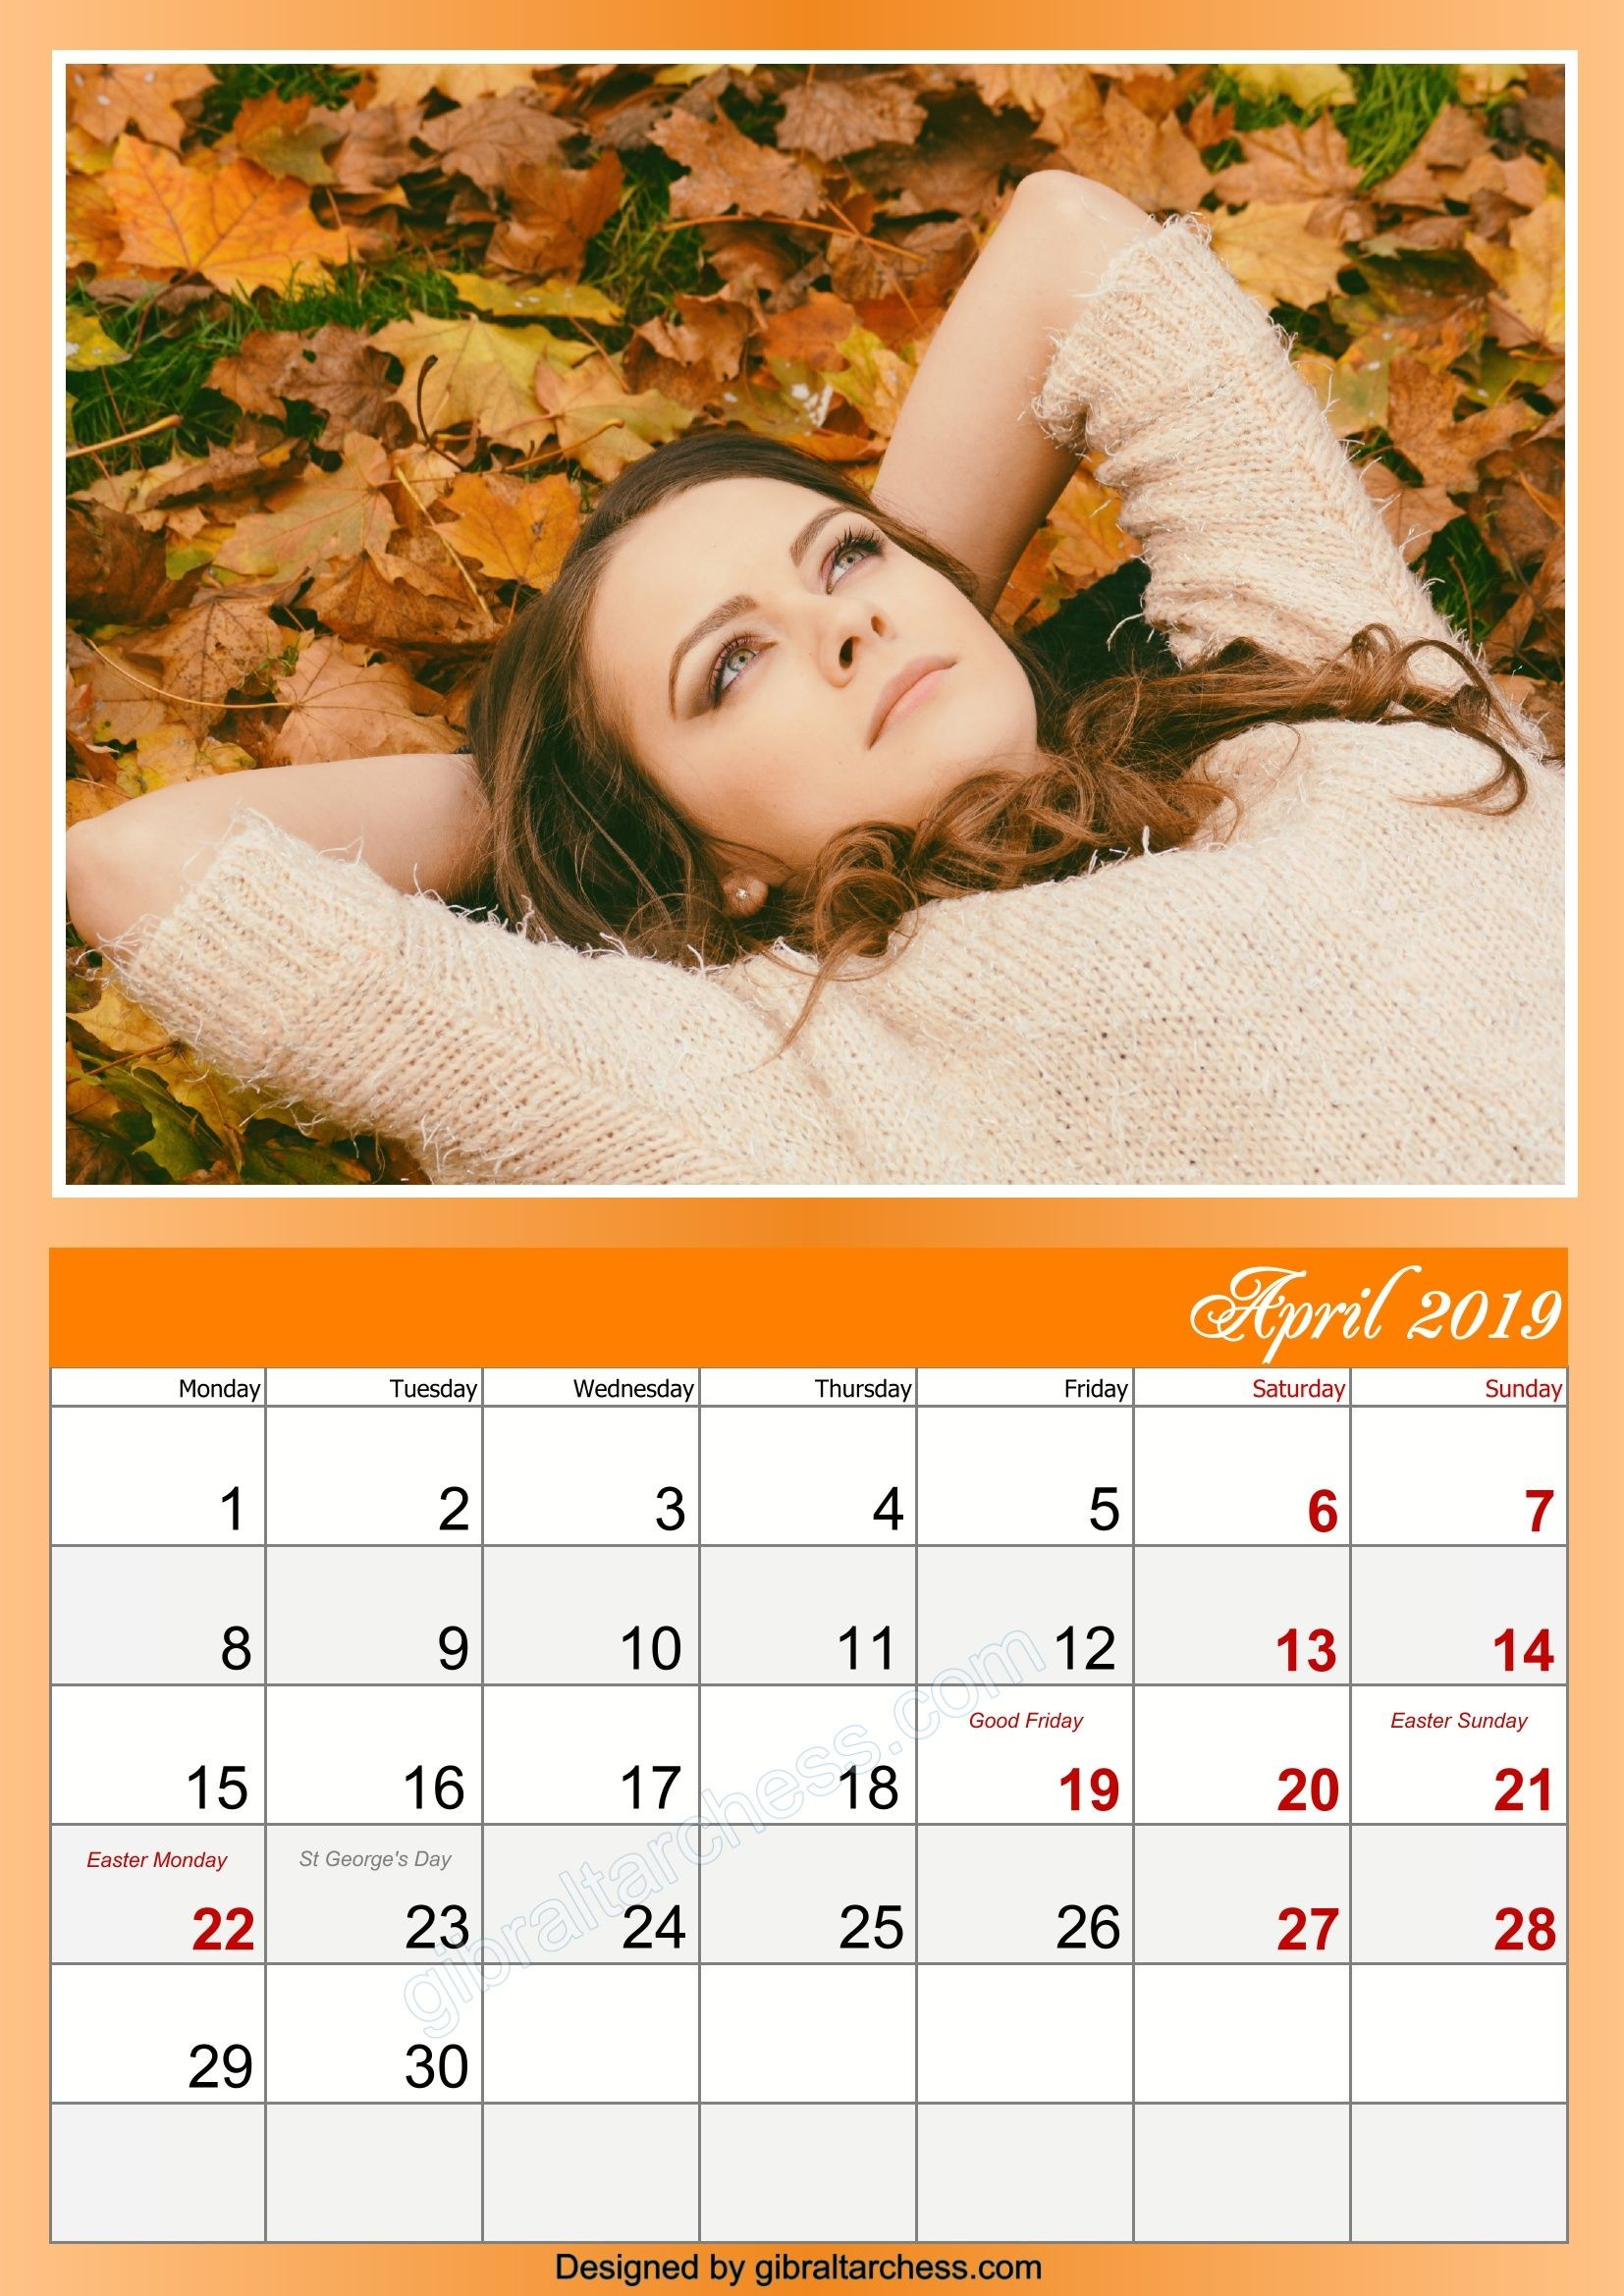 March Calendar for Kids Más Arriba-a-fecha March and April 2019 Calendar Printable Of March Calendar for Kids Más Arriba-a-fecha Bottle Kids Live at Burnham Park Hall Burnham Park Hall London [1